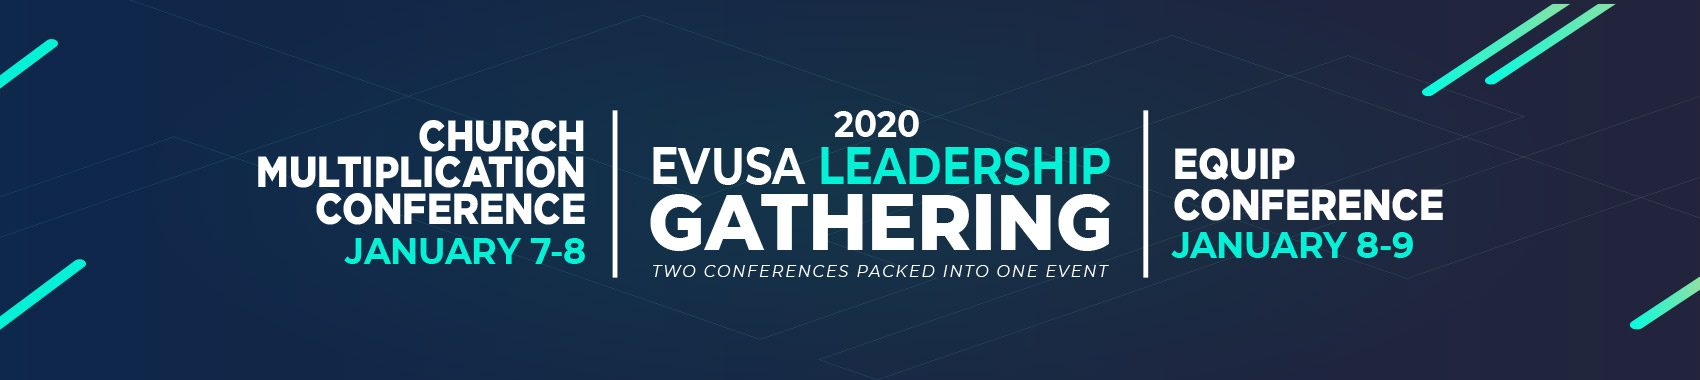 EVUSA-Leadership-Gathering-Banner